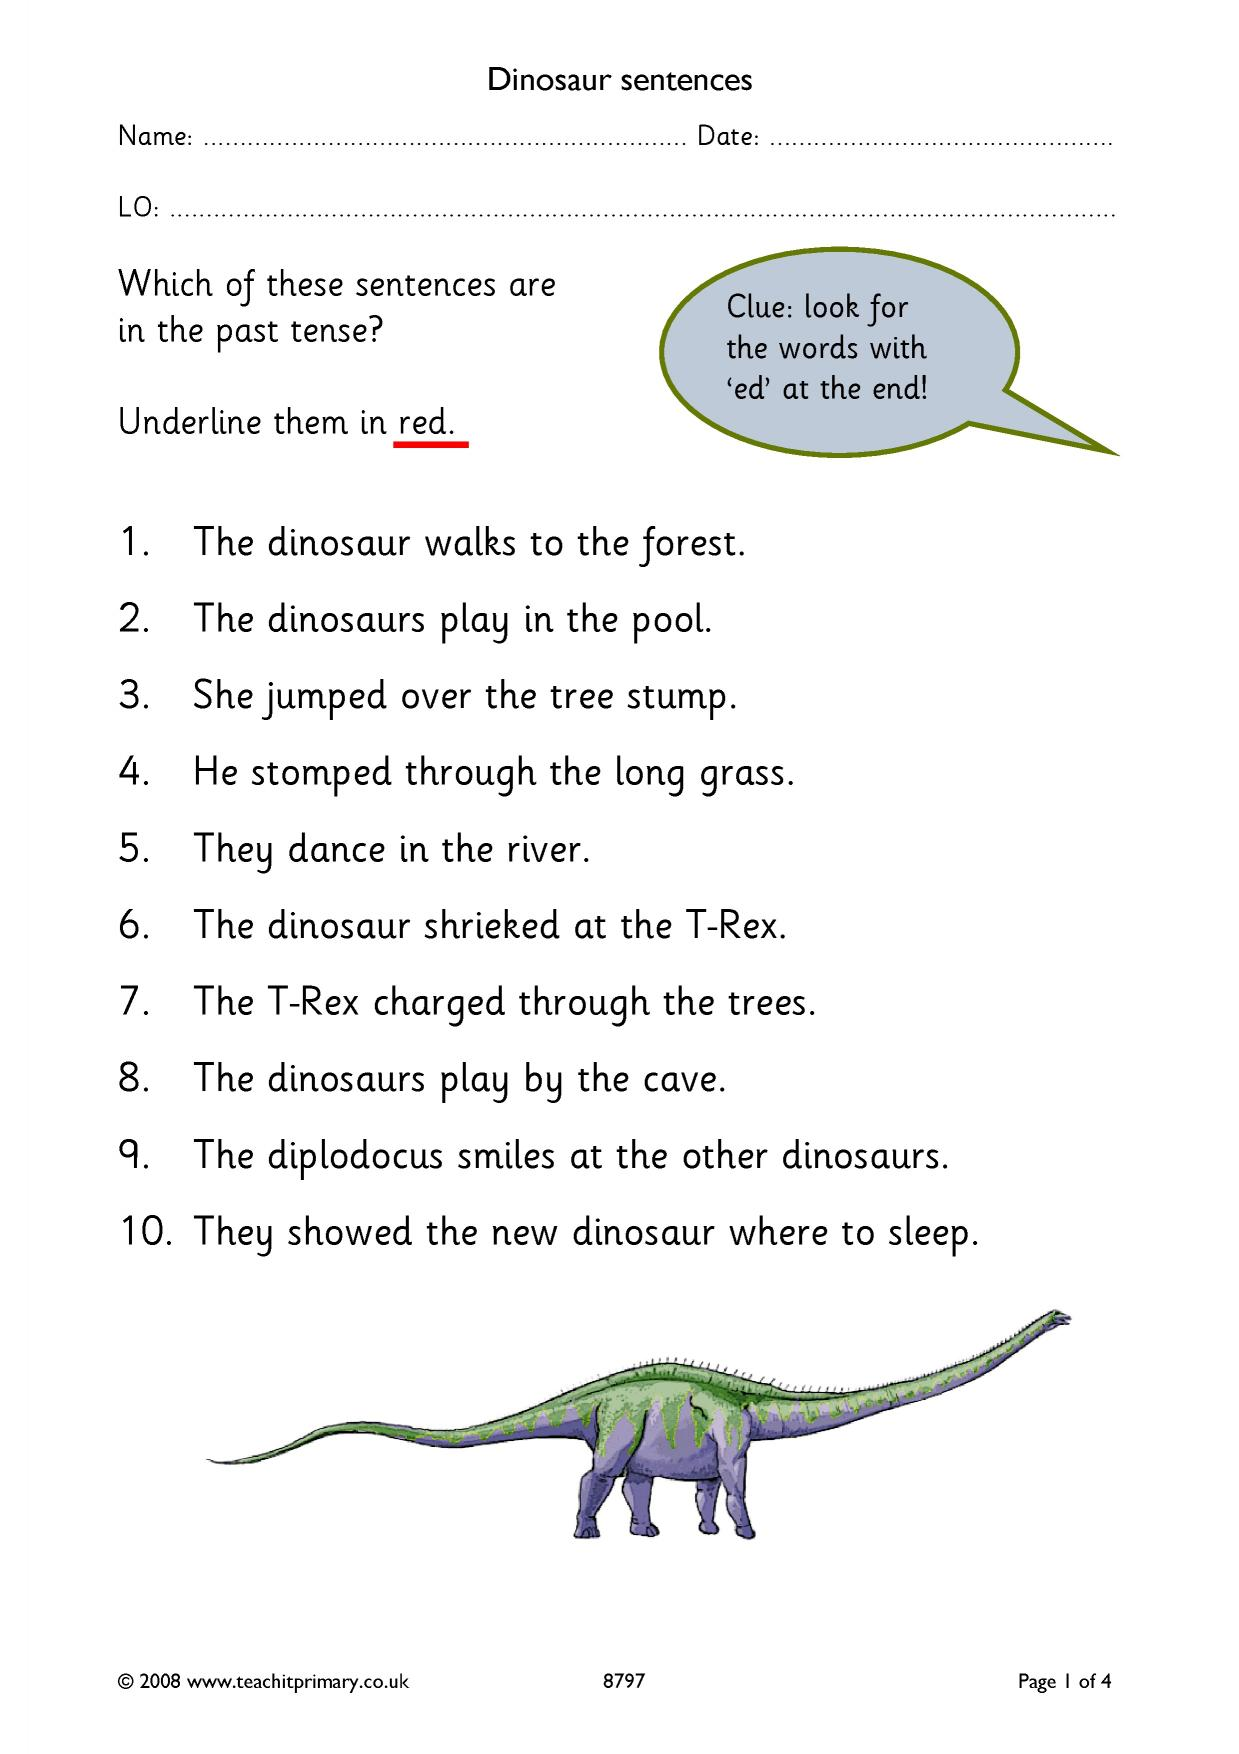 Dinosaurs That End With The Letter A